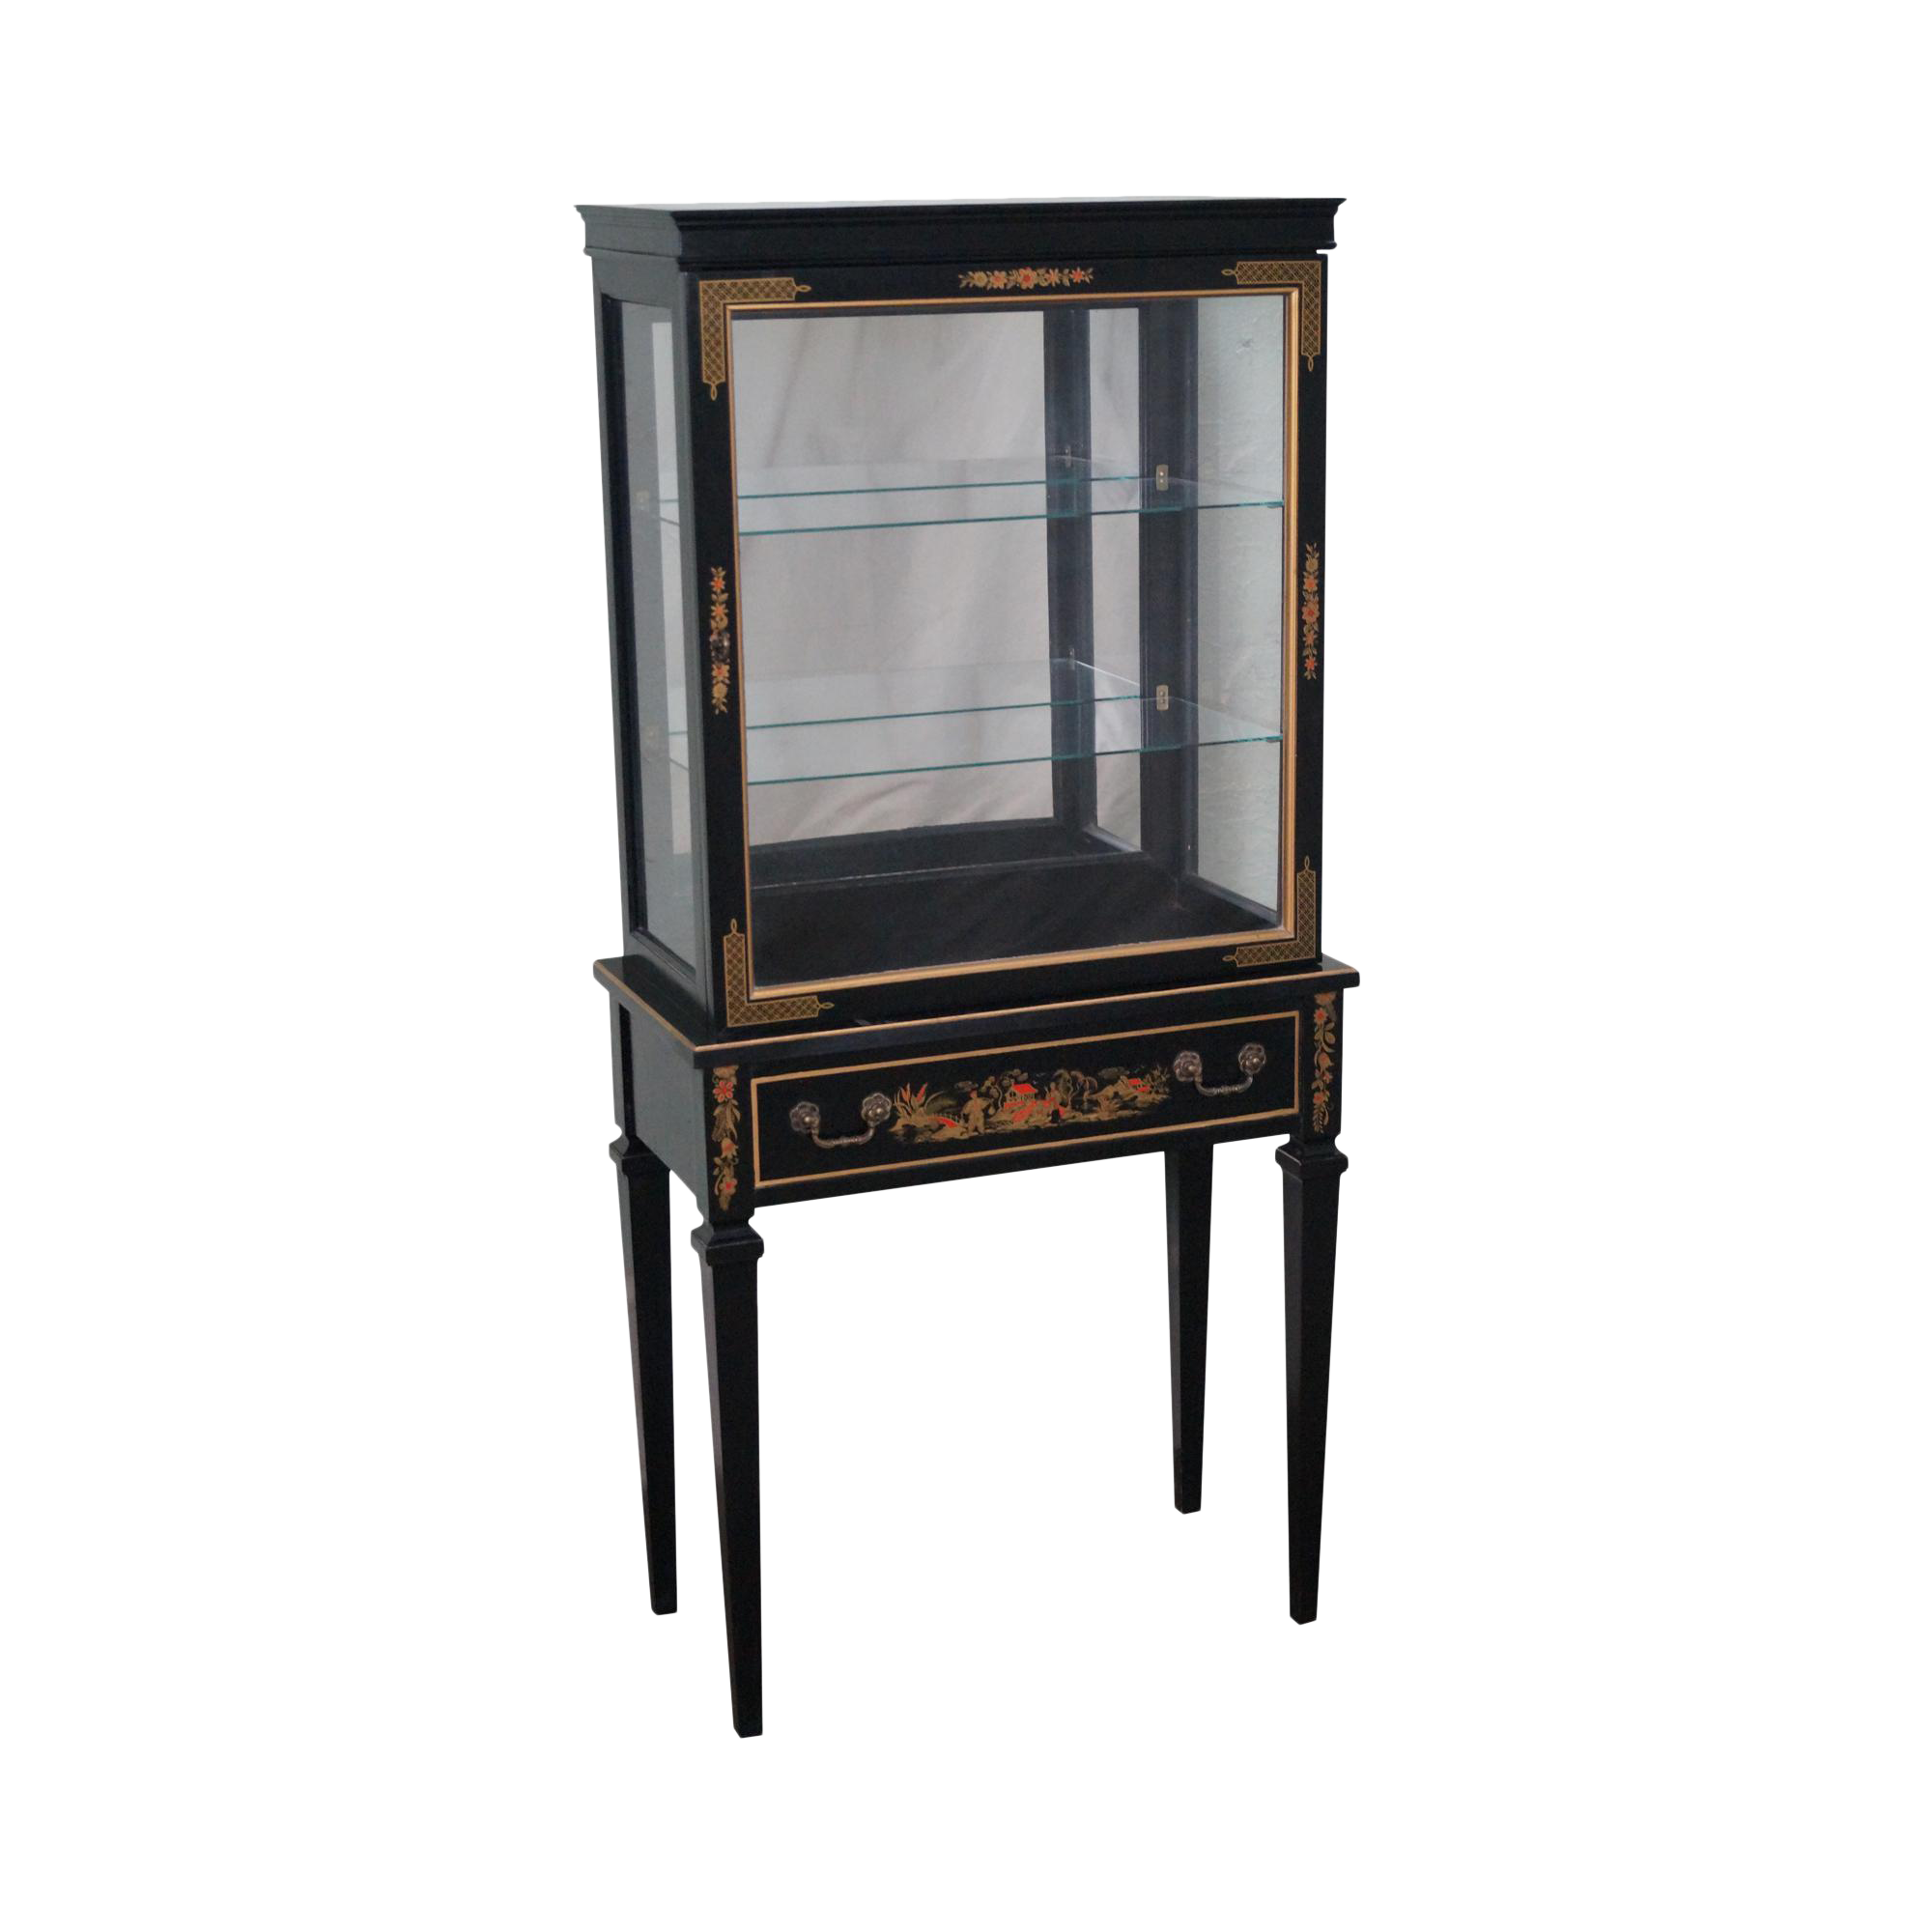 Vintage Black Chinoiserie Painted Small Curio Display